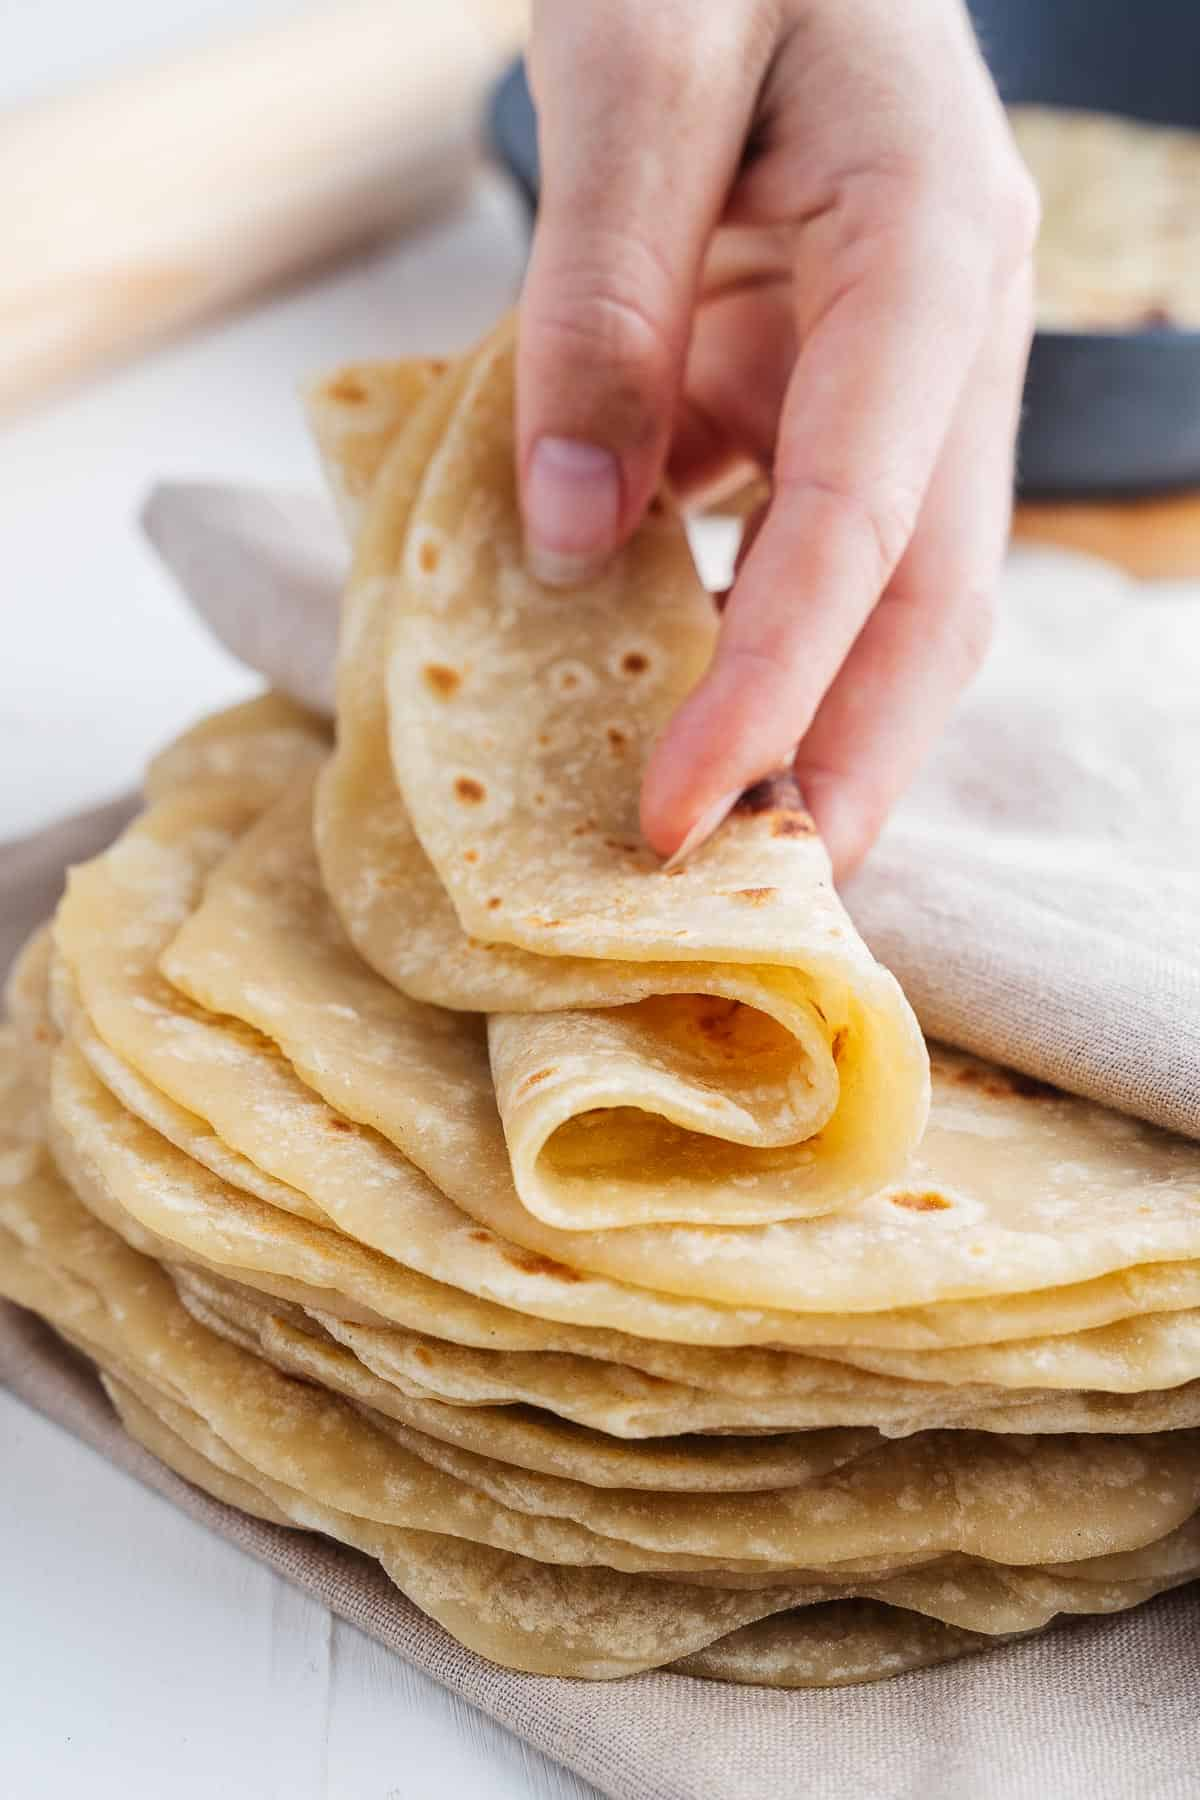 Folded Flour Tortilla in a Hand